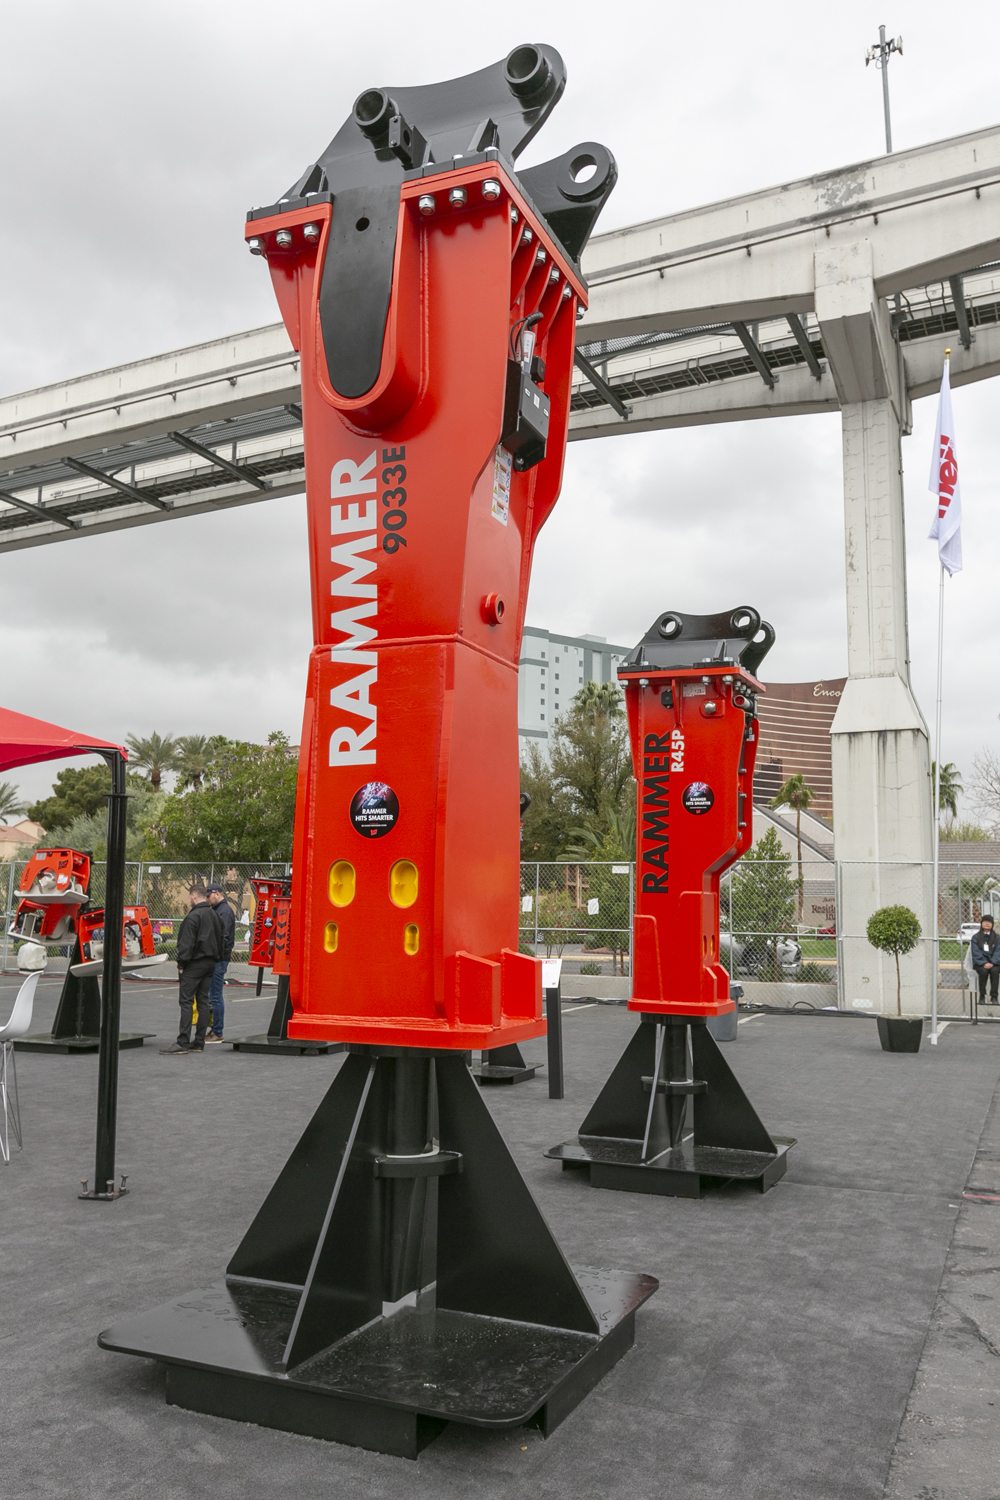 Rammer's new 9033E hammer was showcased at the CONEXPO-CON/AGG 2020 exhibition